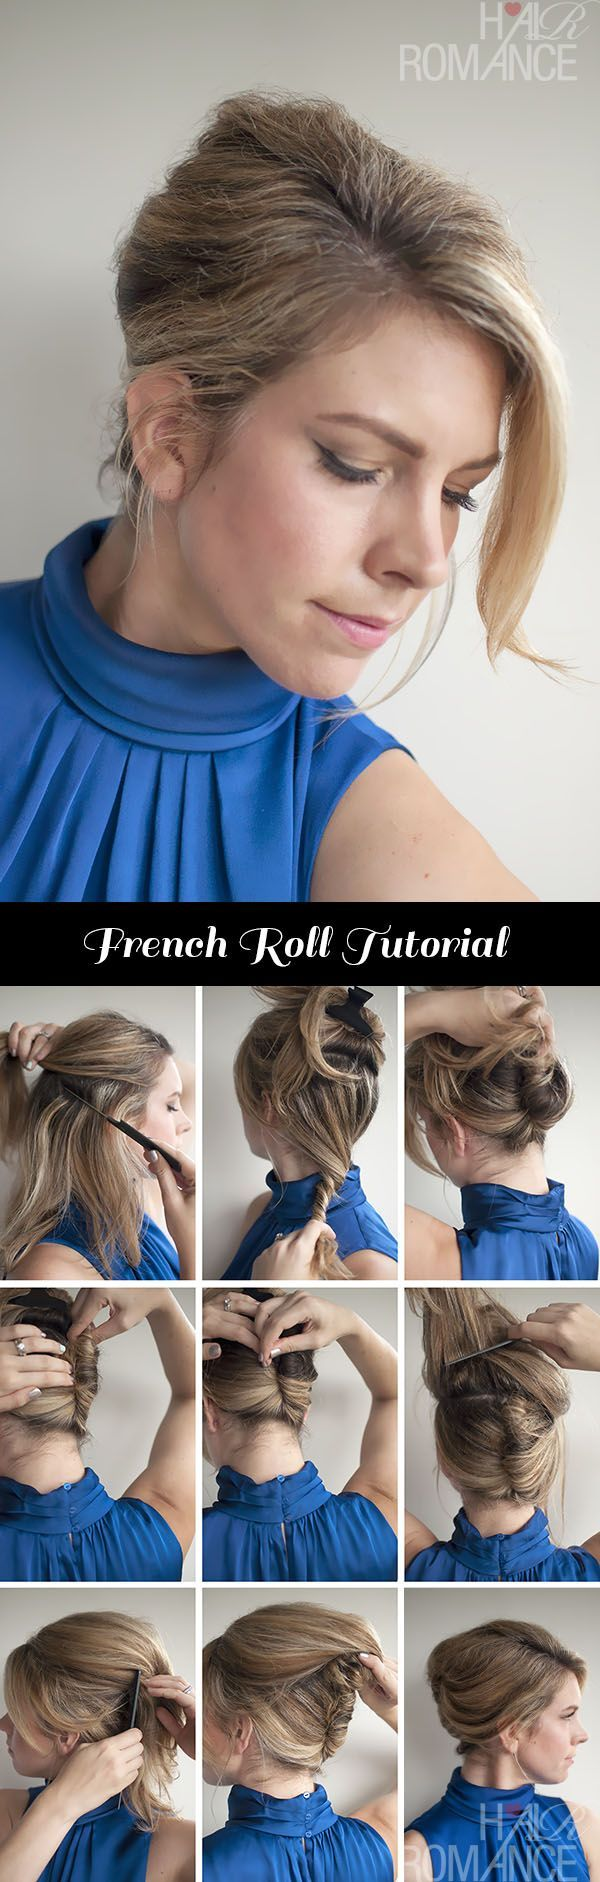 Hair Romance: French roll hairstyle tutorial | Kidspot